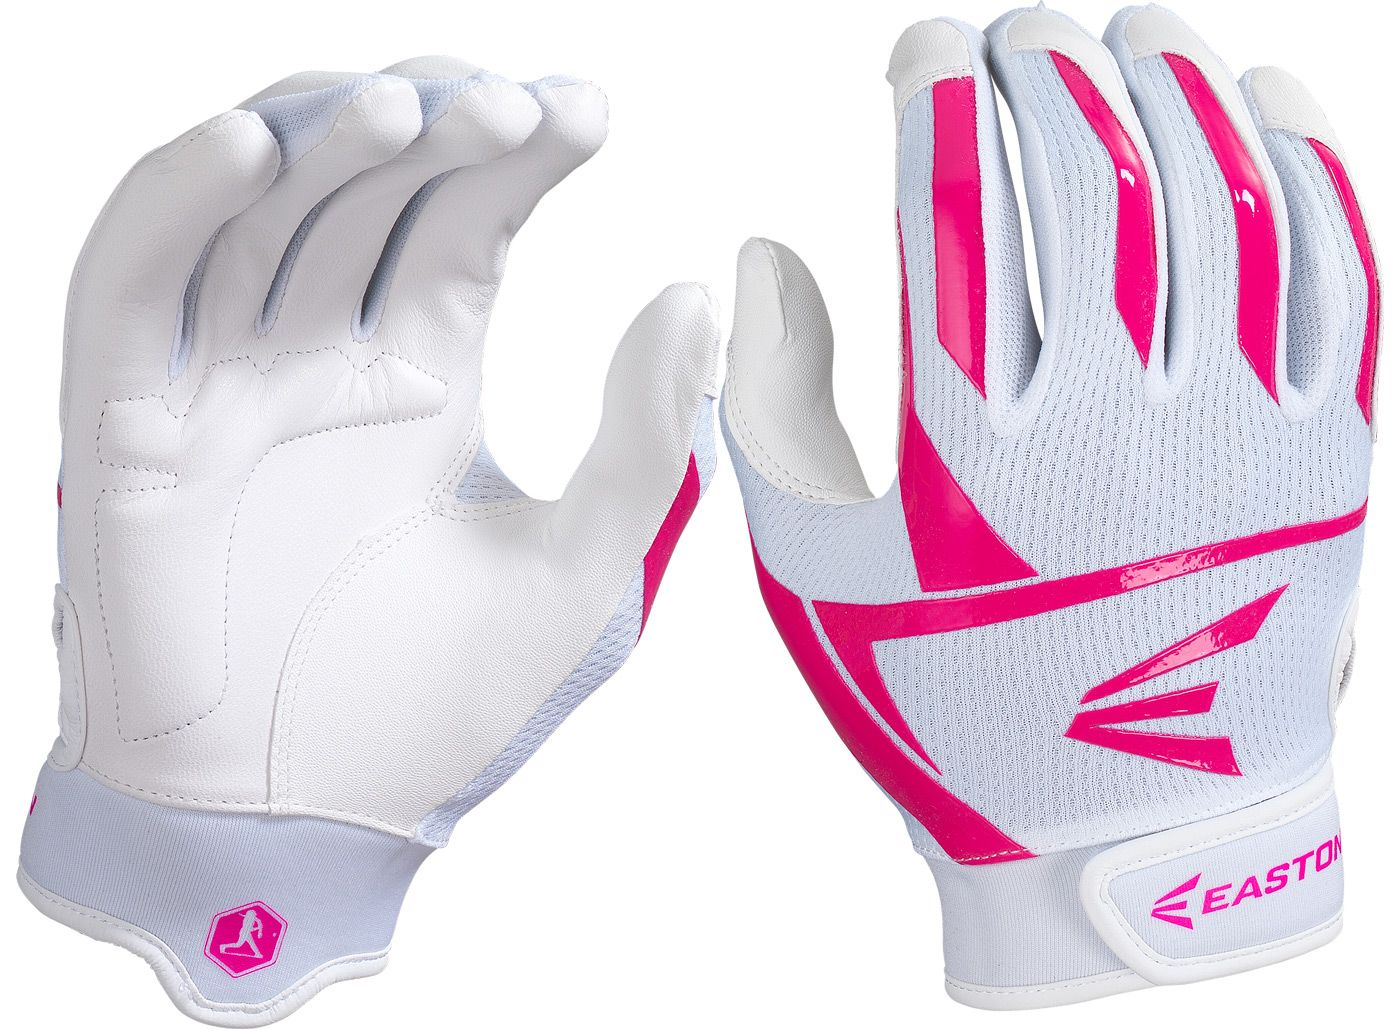 Easton Girls' Prowess Batting Gloves